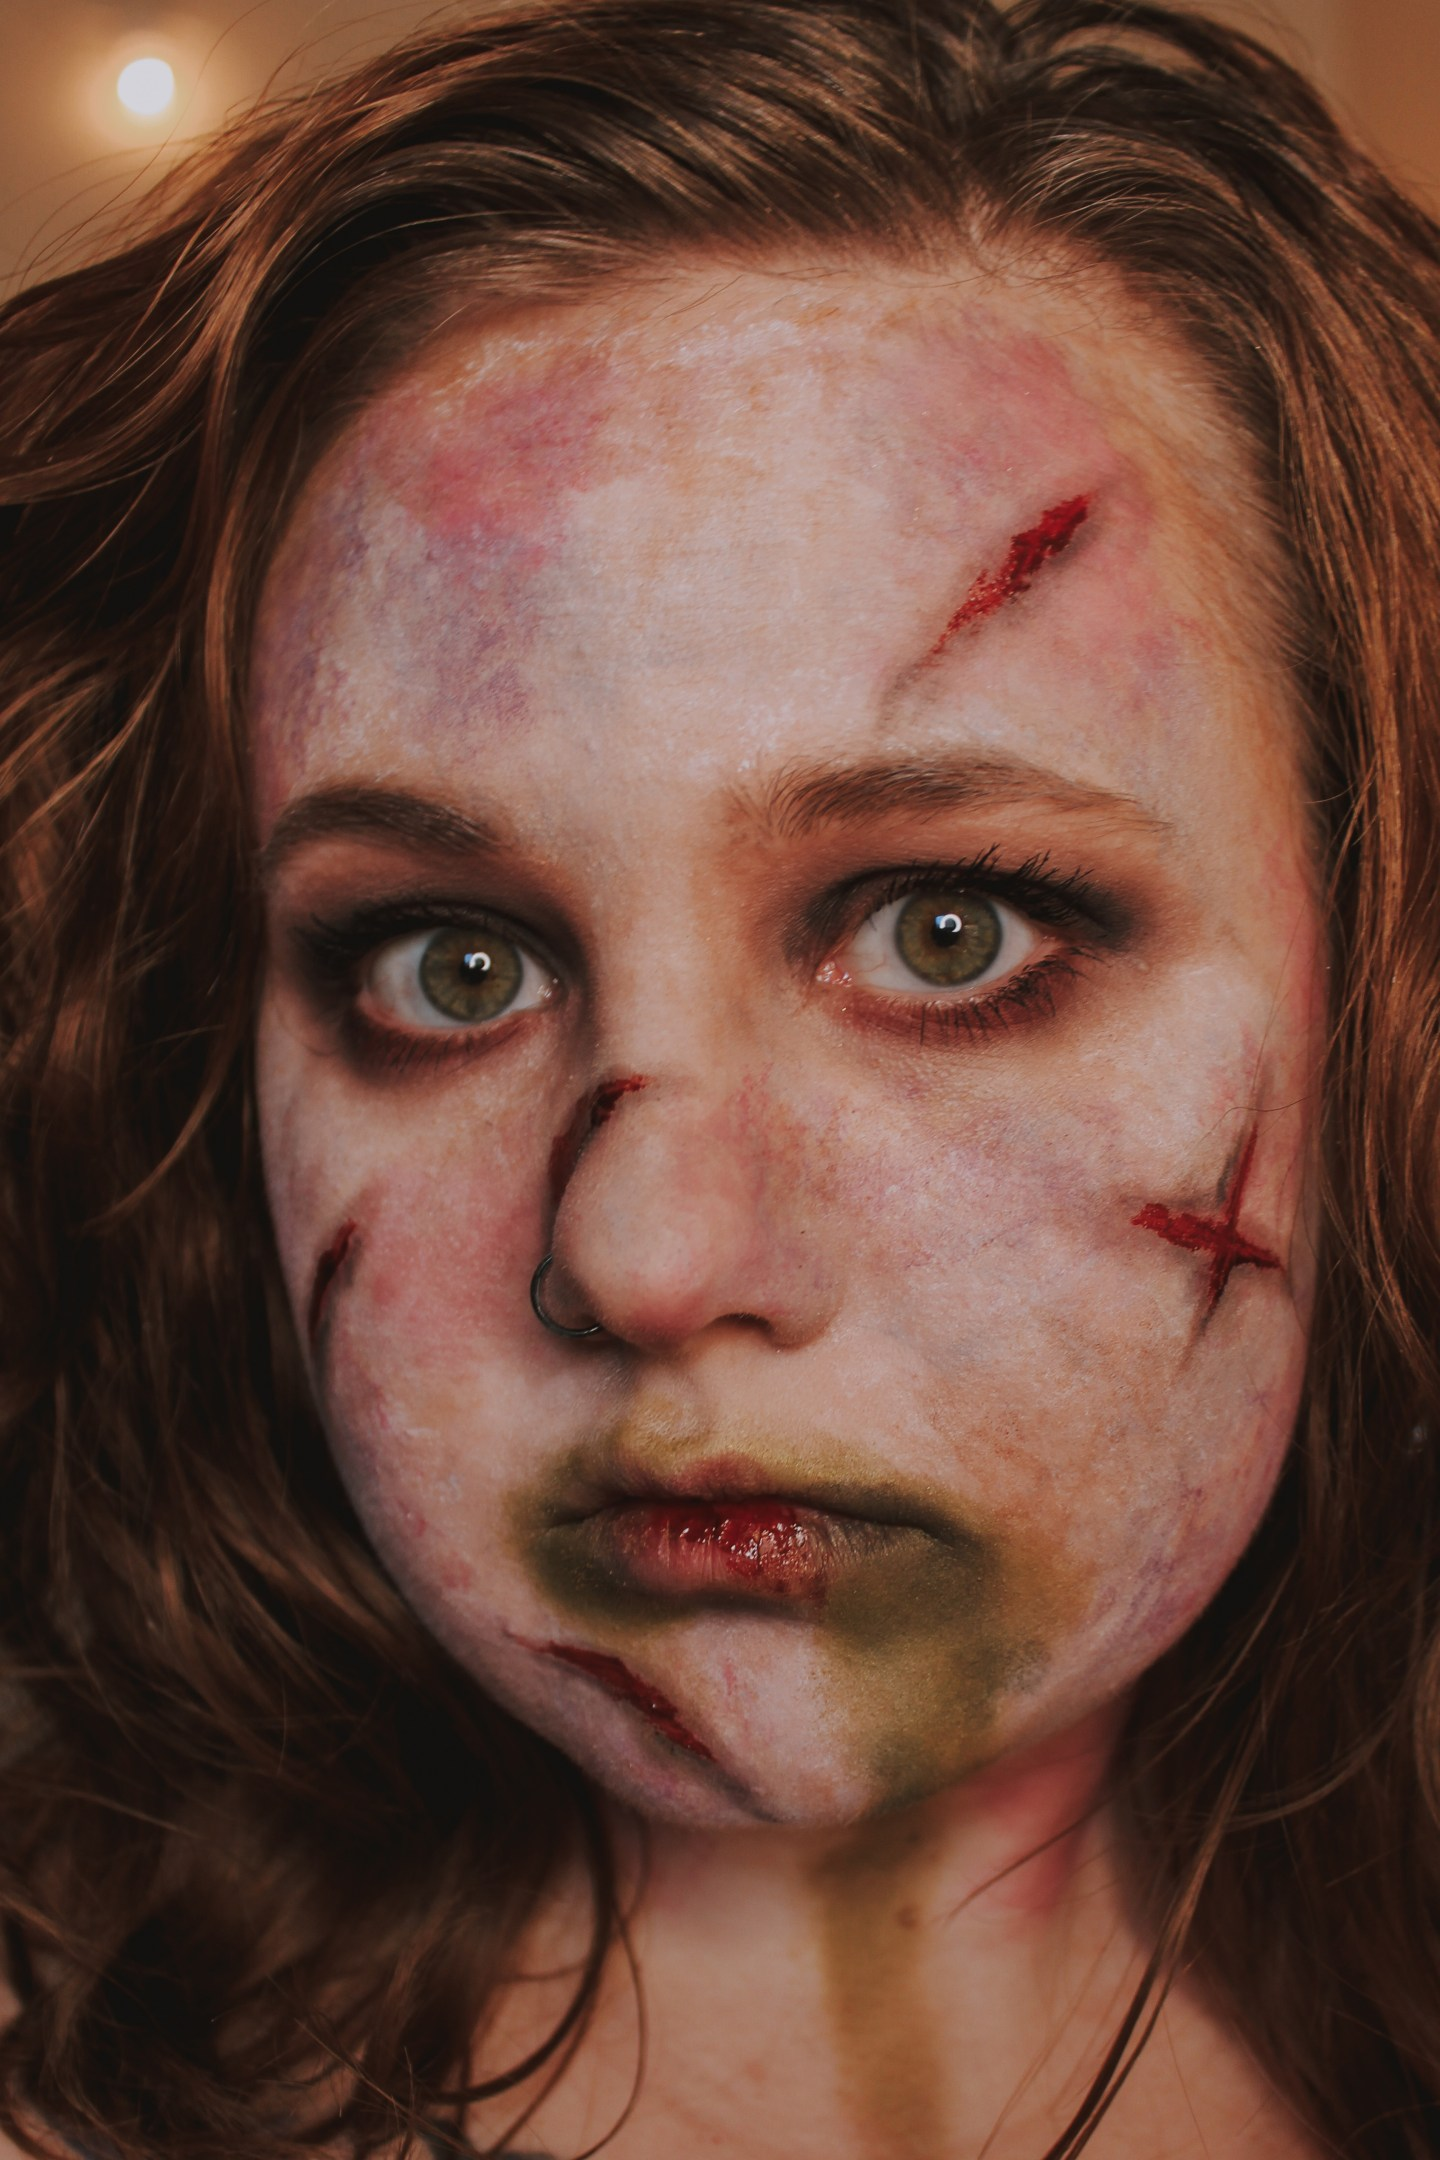 The Power of Christ Compels You! Regan from the Exorcist Inspired Makeup Look 2